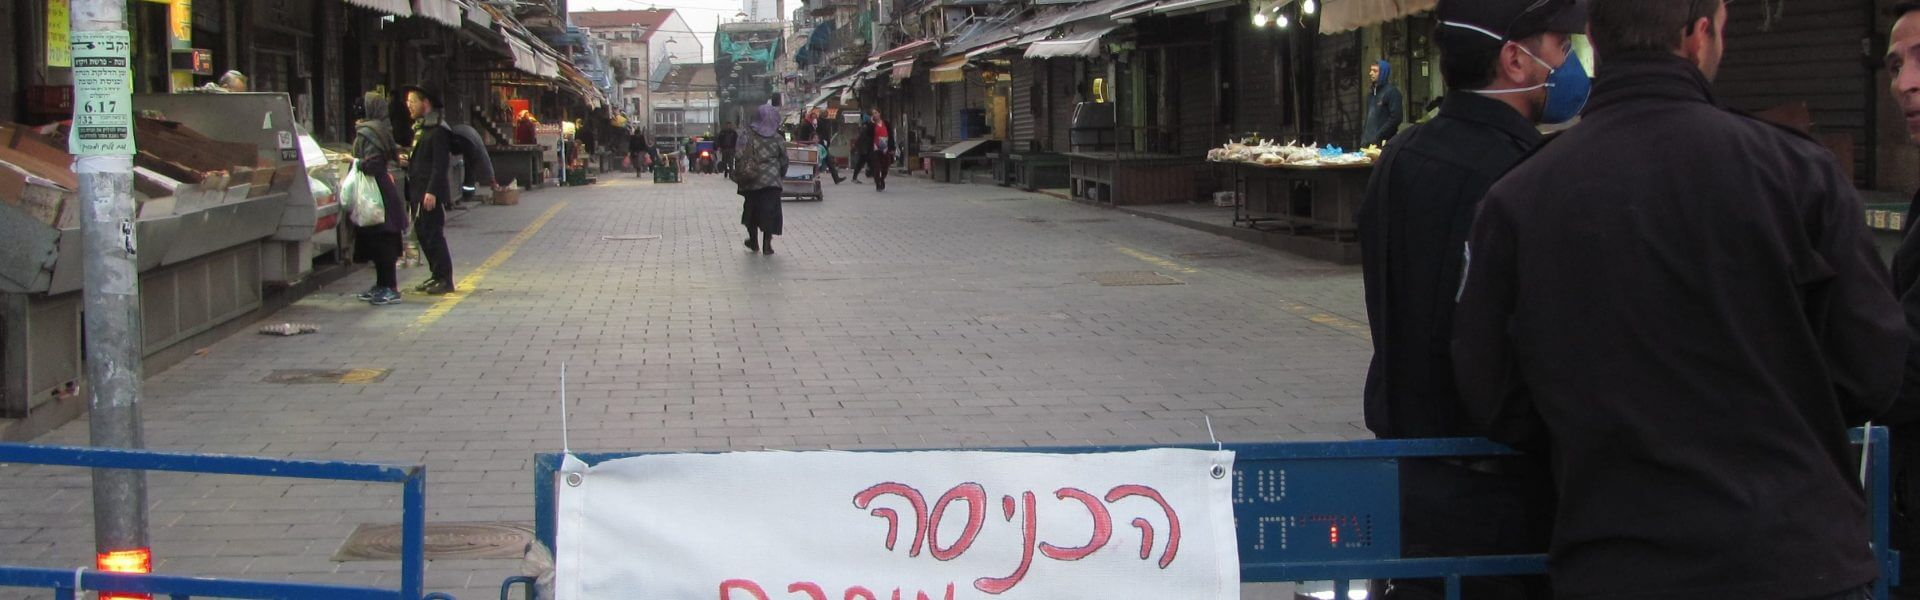 Mahane Yehuda Market in Jerusalem is closed due to the coronavirus pandemic. The sign reads: